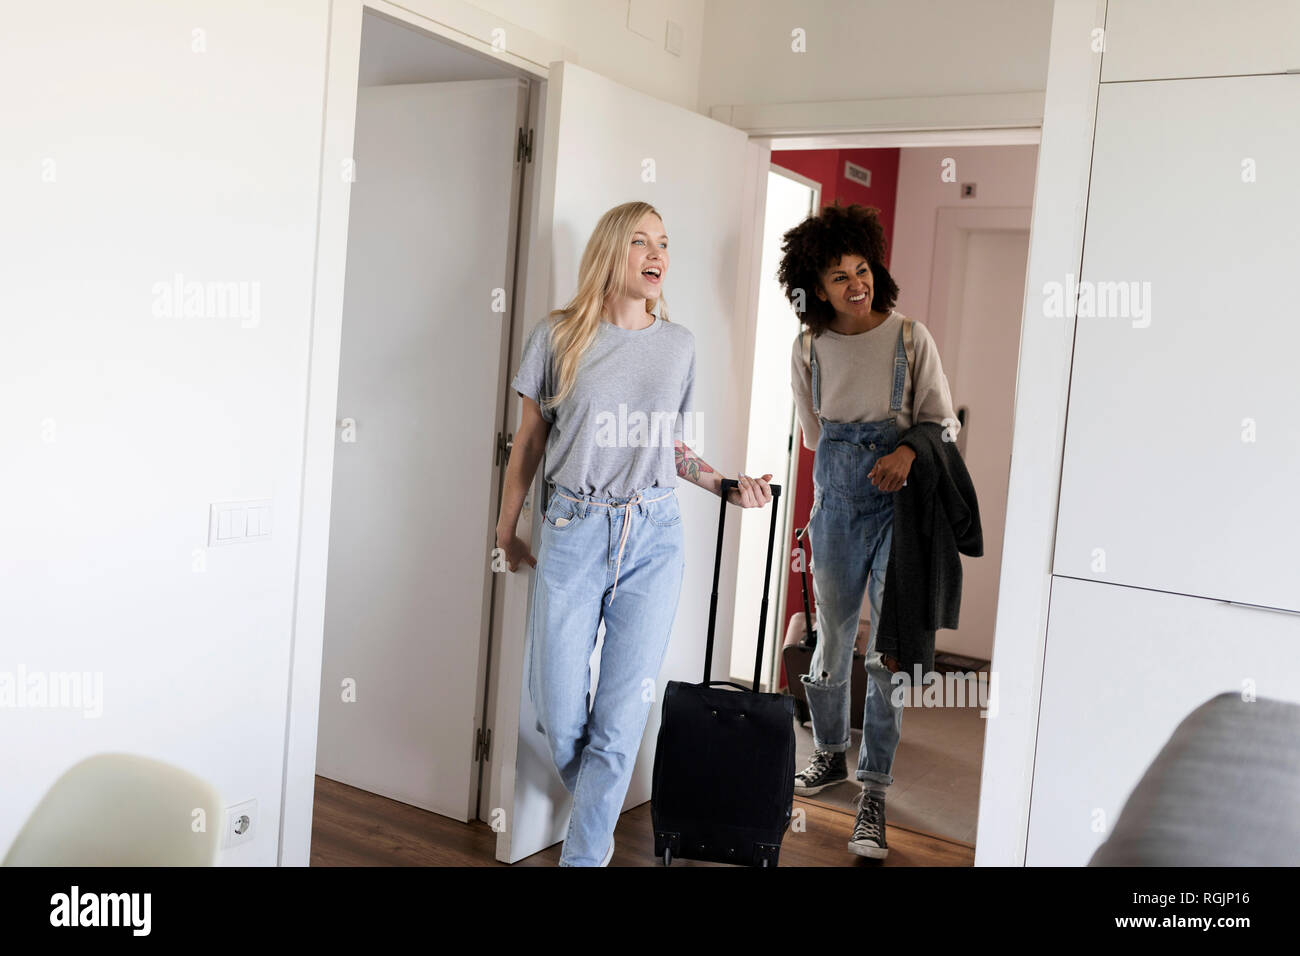 Two happy women with baggage arriving in accomodation - Stock Image